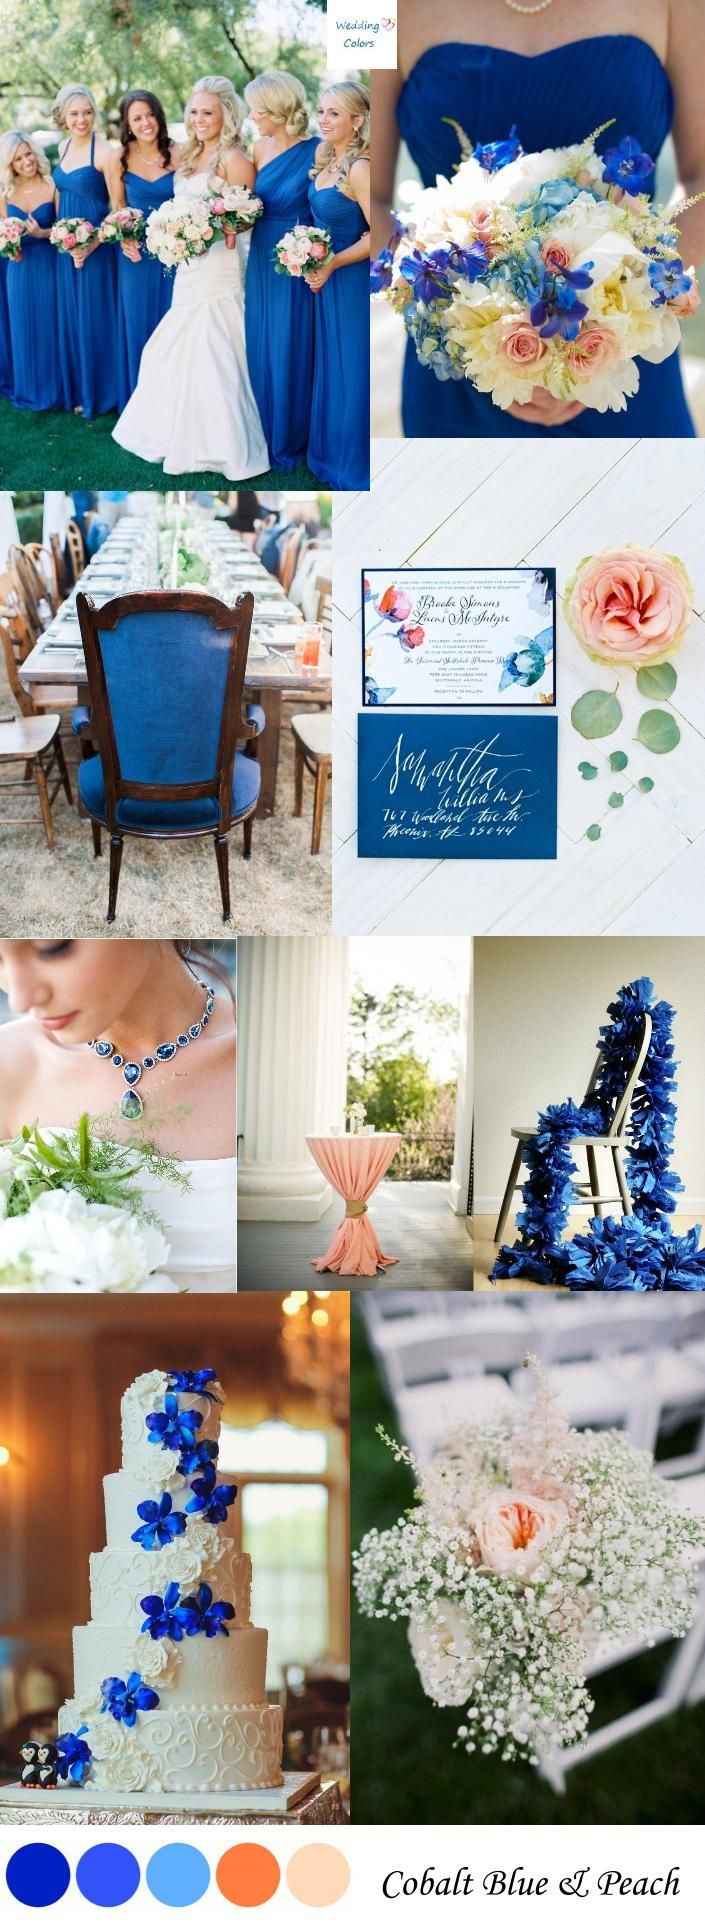 {Cobalt Blue & Peach} Wedding Color Inspiration - use the colour in the invites?